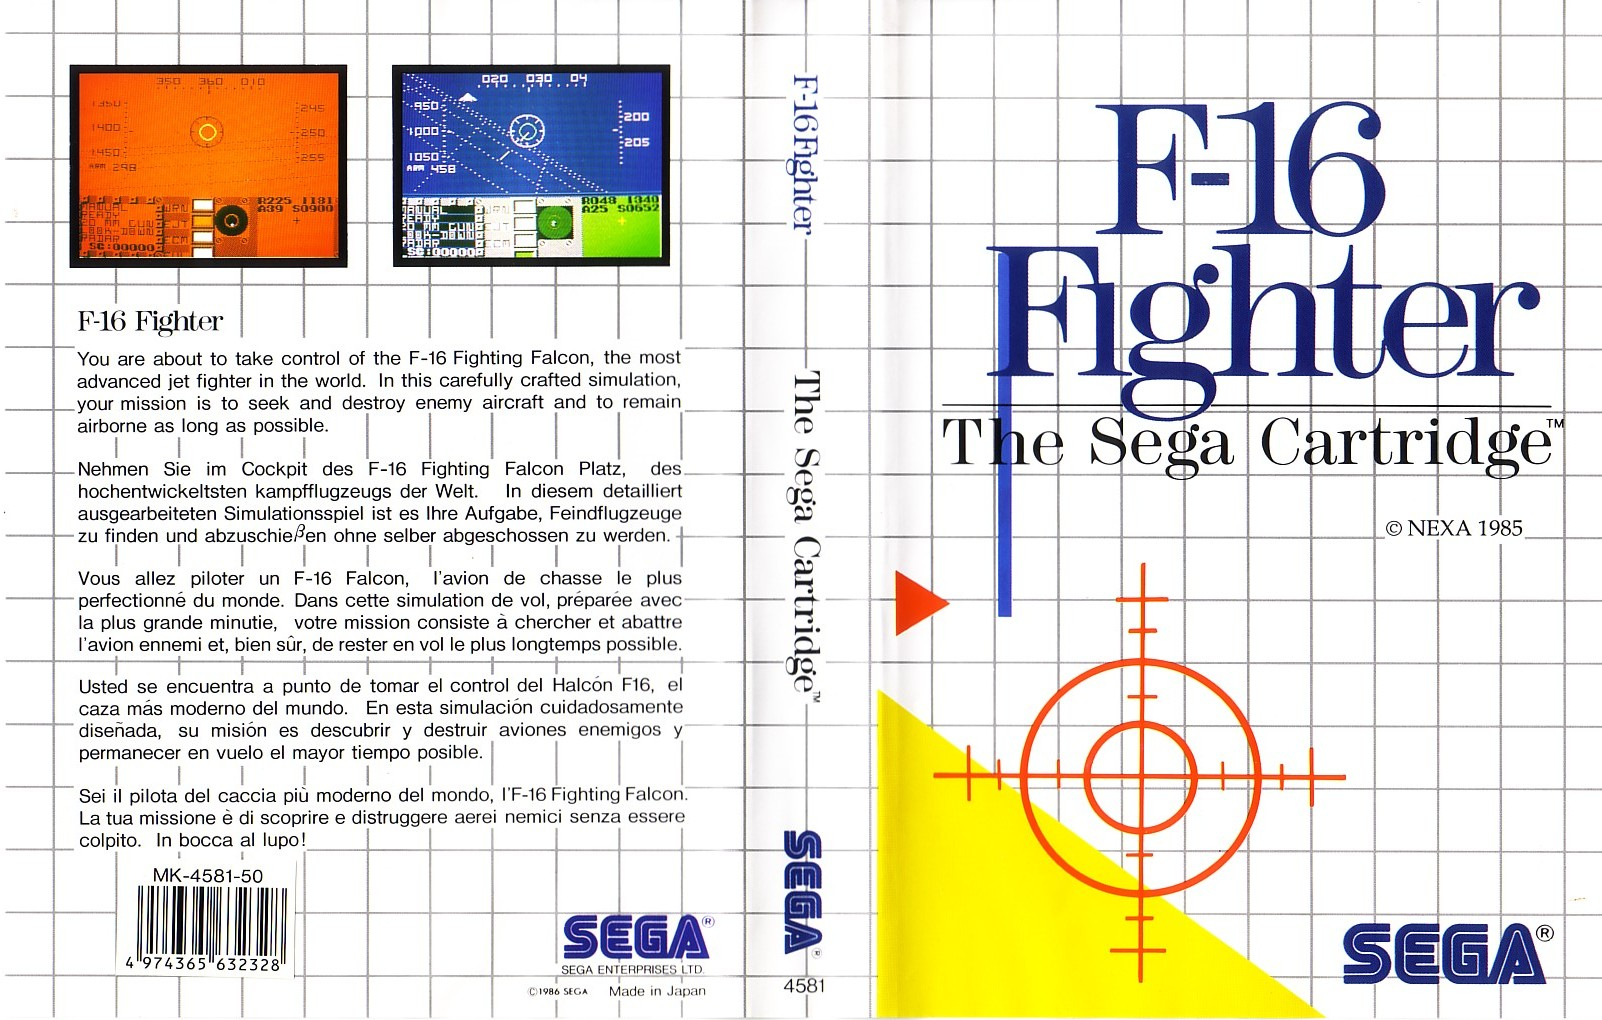 http://www.smspower.org/uploads/Scans/F16FightingFalcon-SMS-EU-Cartridge-R.jpg